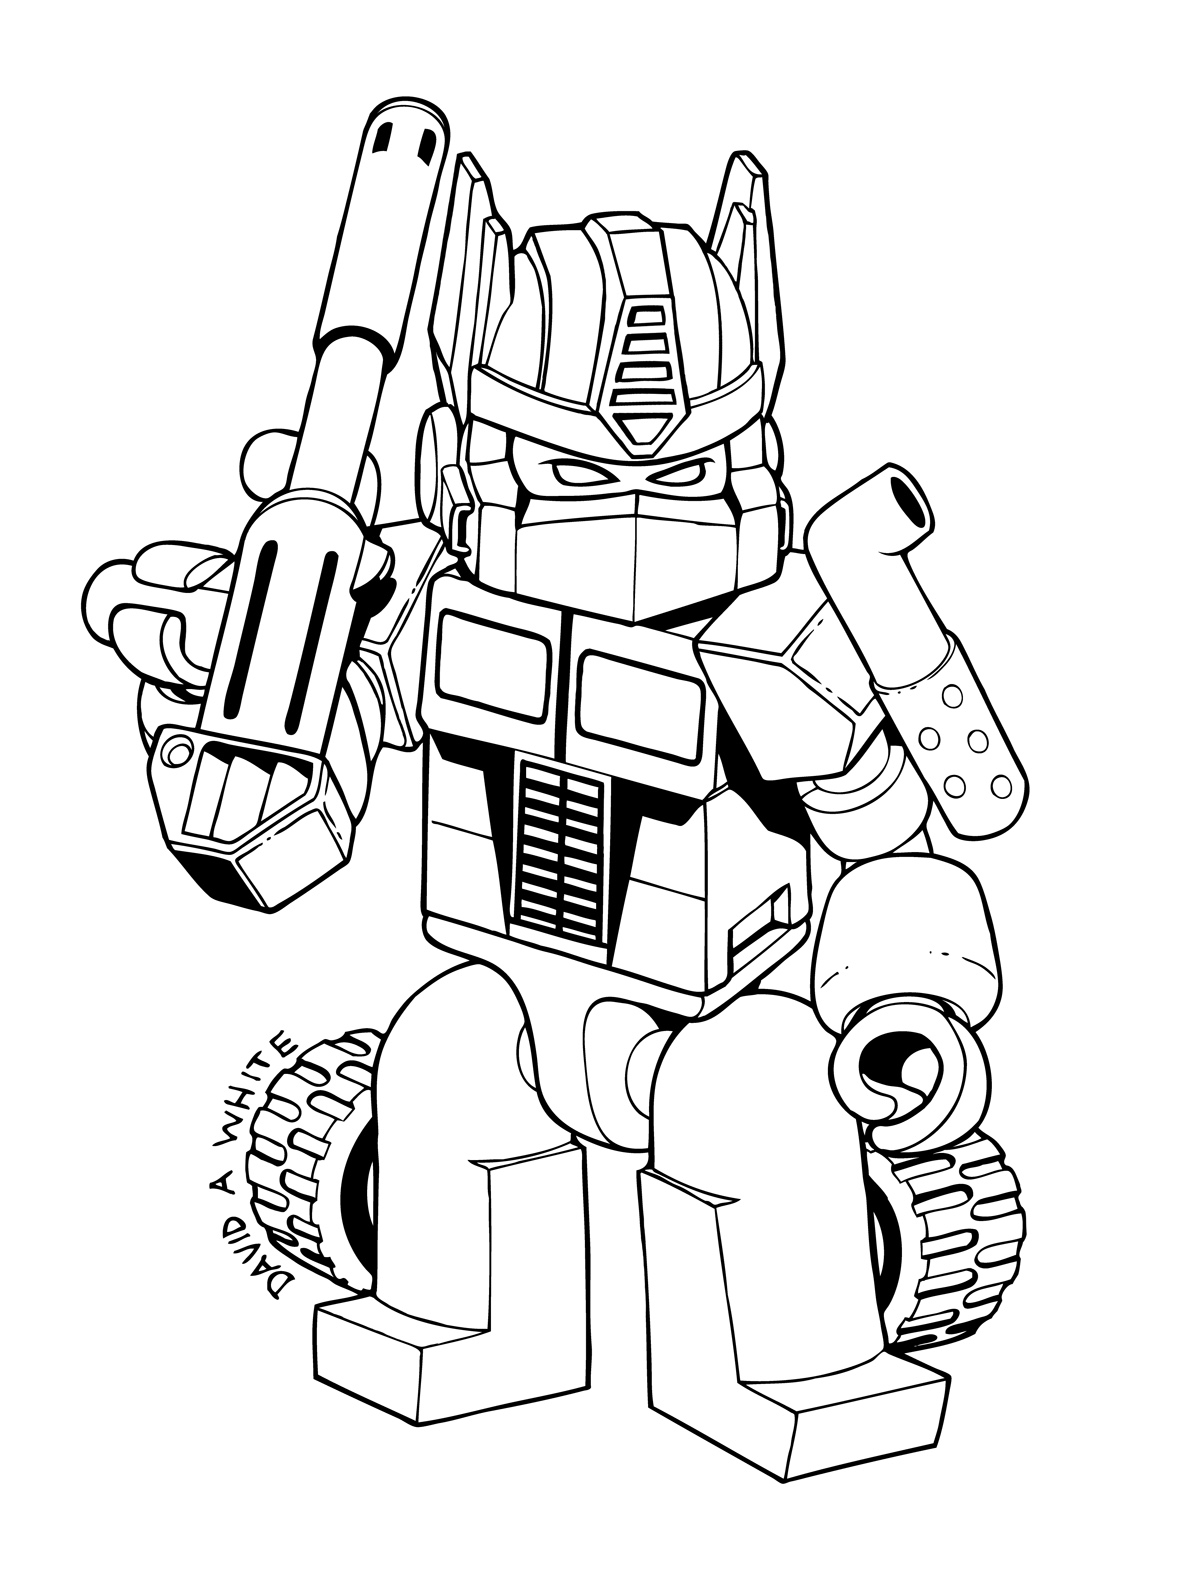 transformers coloring sheets | Only Coloring Pages